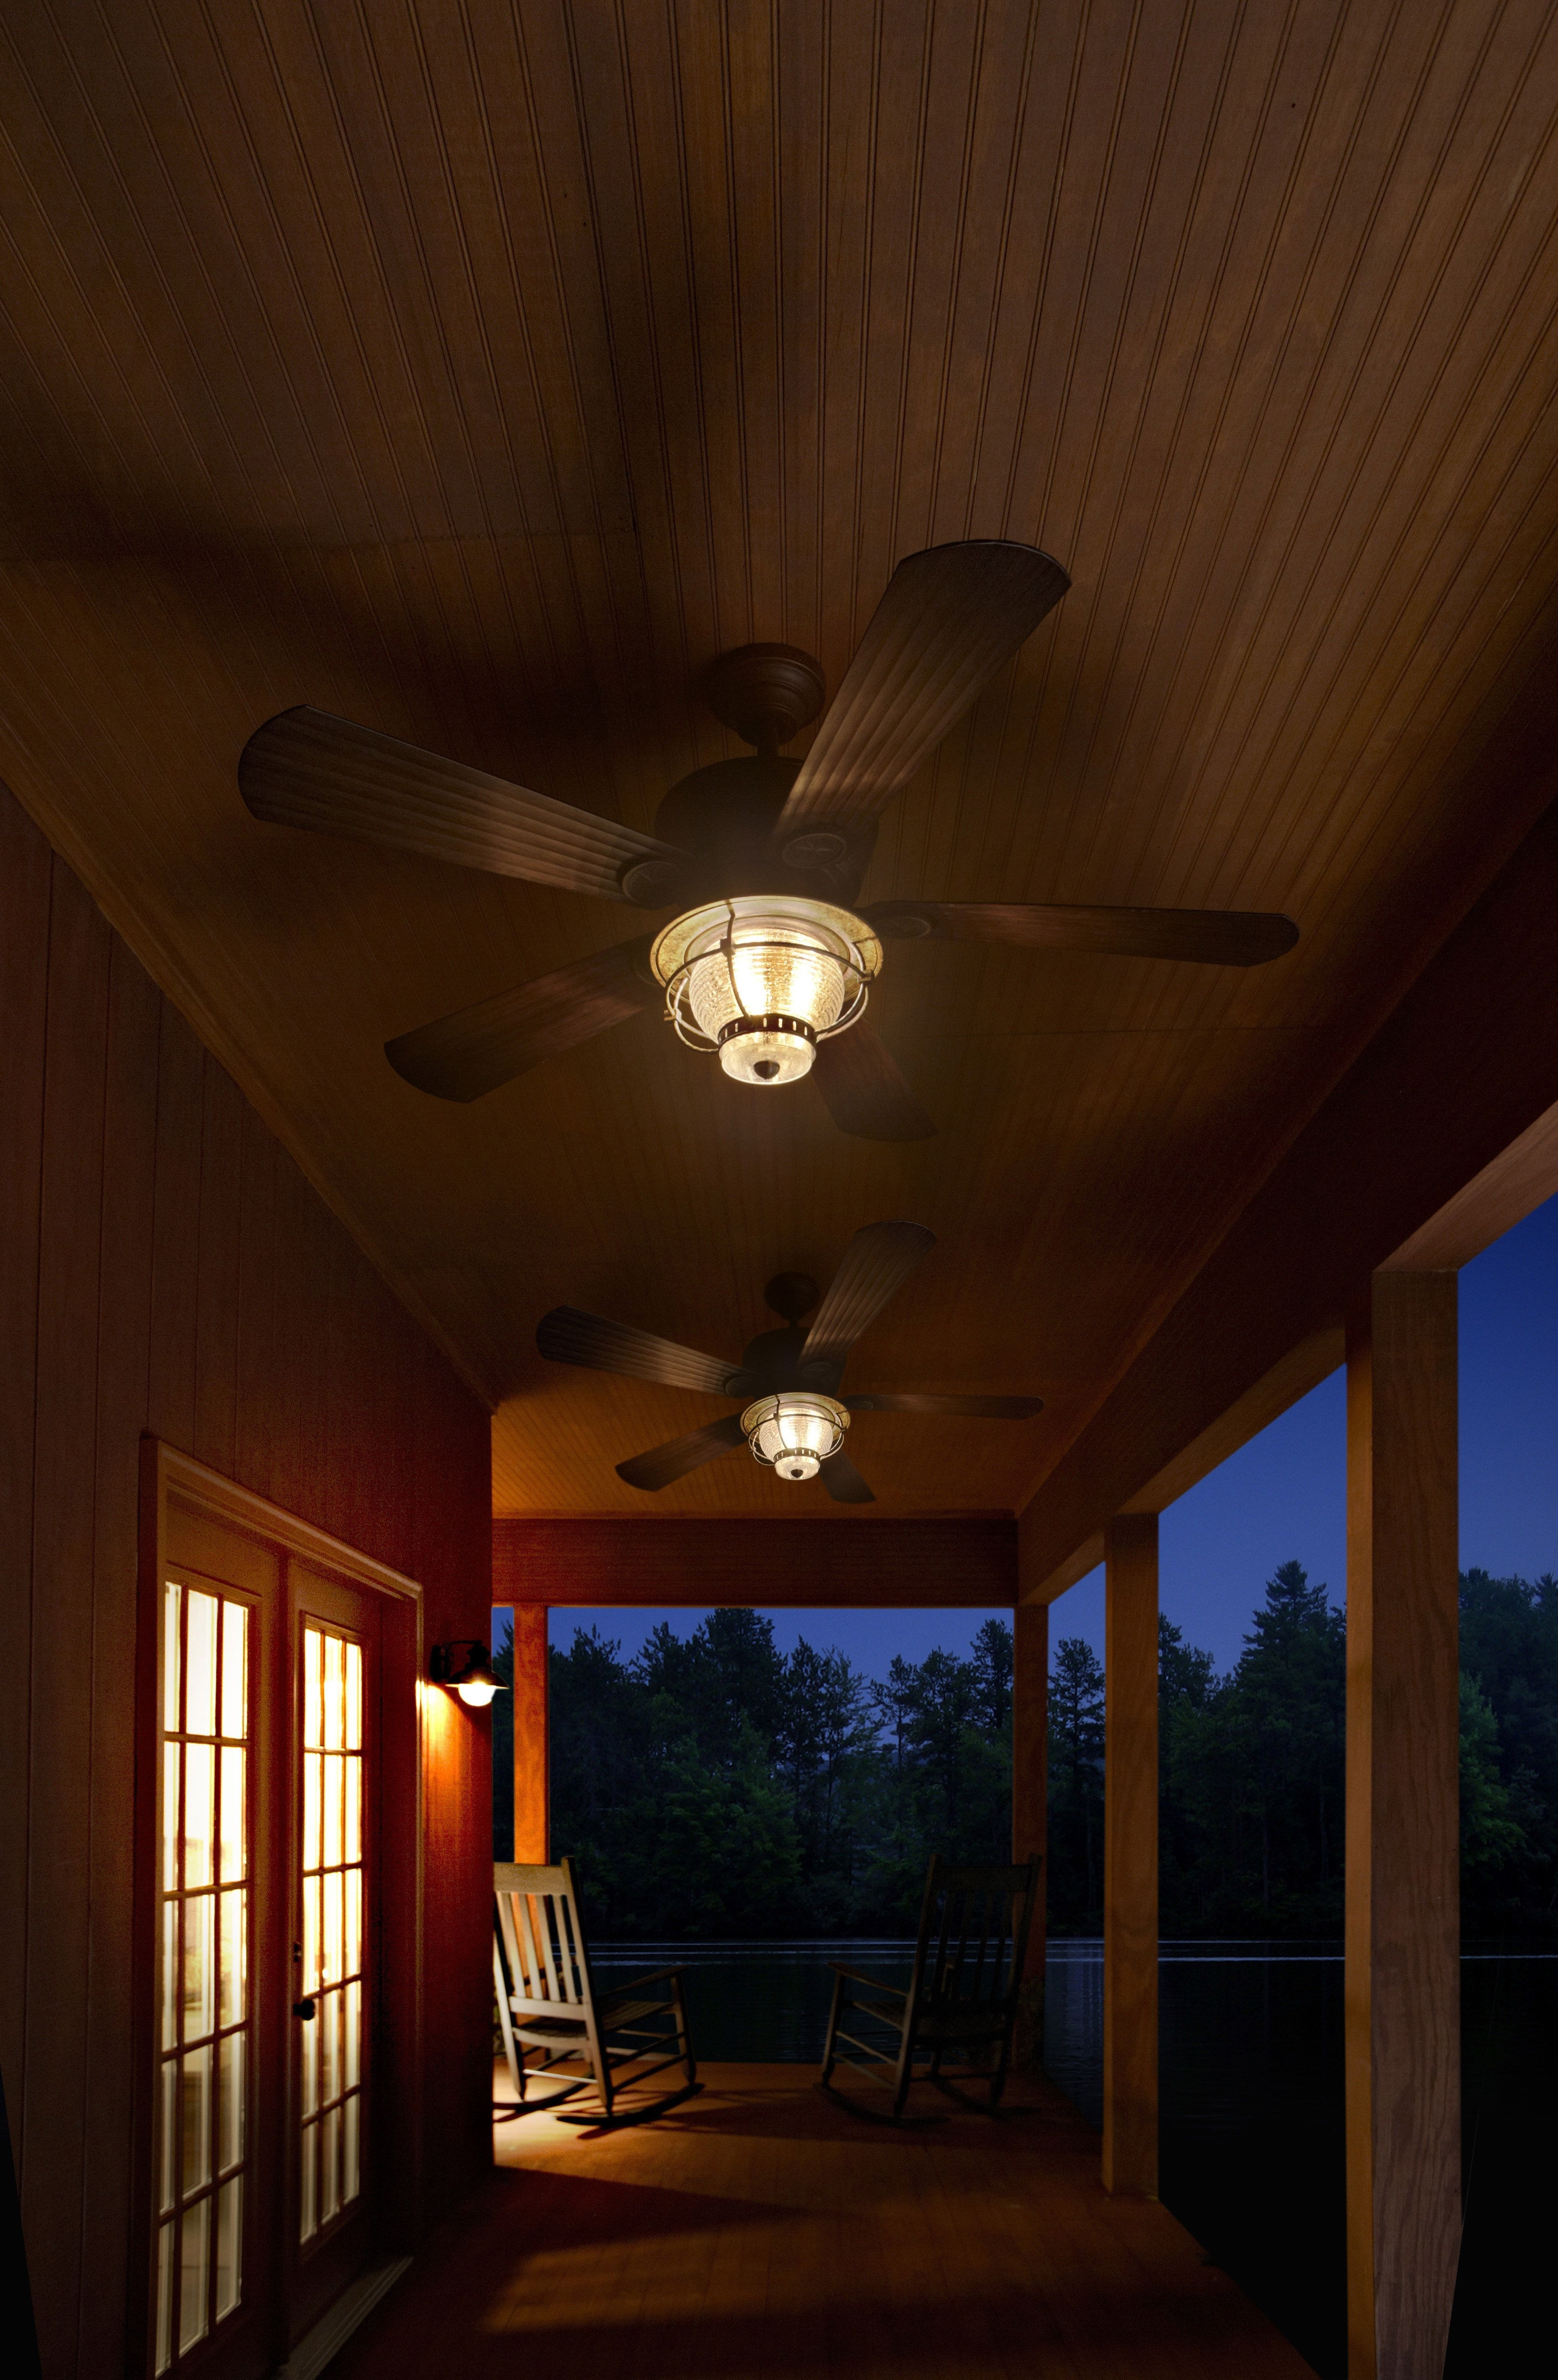 Outdoor Patio Ceiling Fans With Lights Within Famous Be Prepared For The Summer Heat With Harbor Breeze Outdoor Ceiling (View 11 of 20)